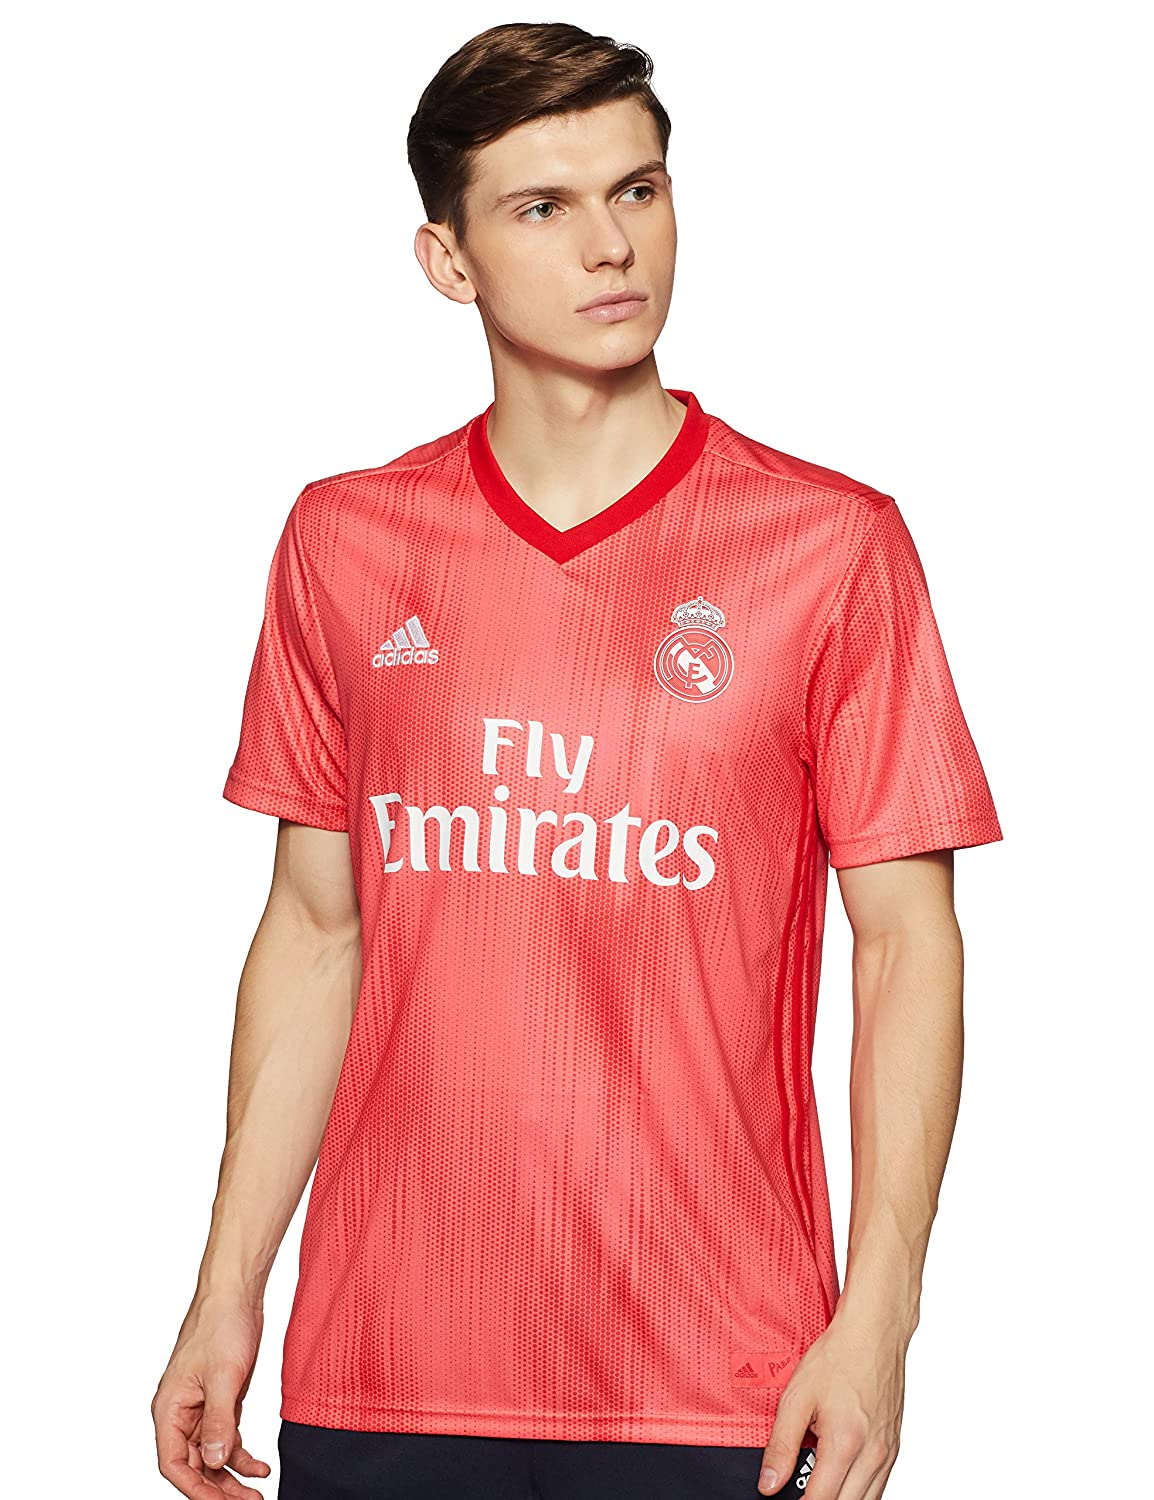 new arrivals 8fac2 72c4d Real Madrid Third Jersey 2018/19 - UCL Away, Jerseys ...